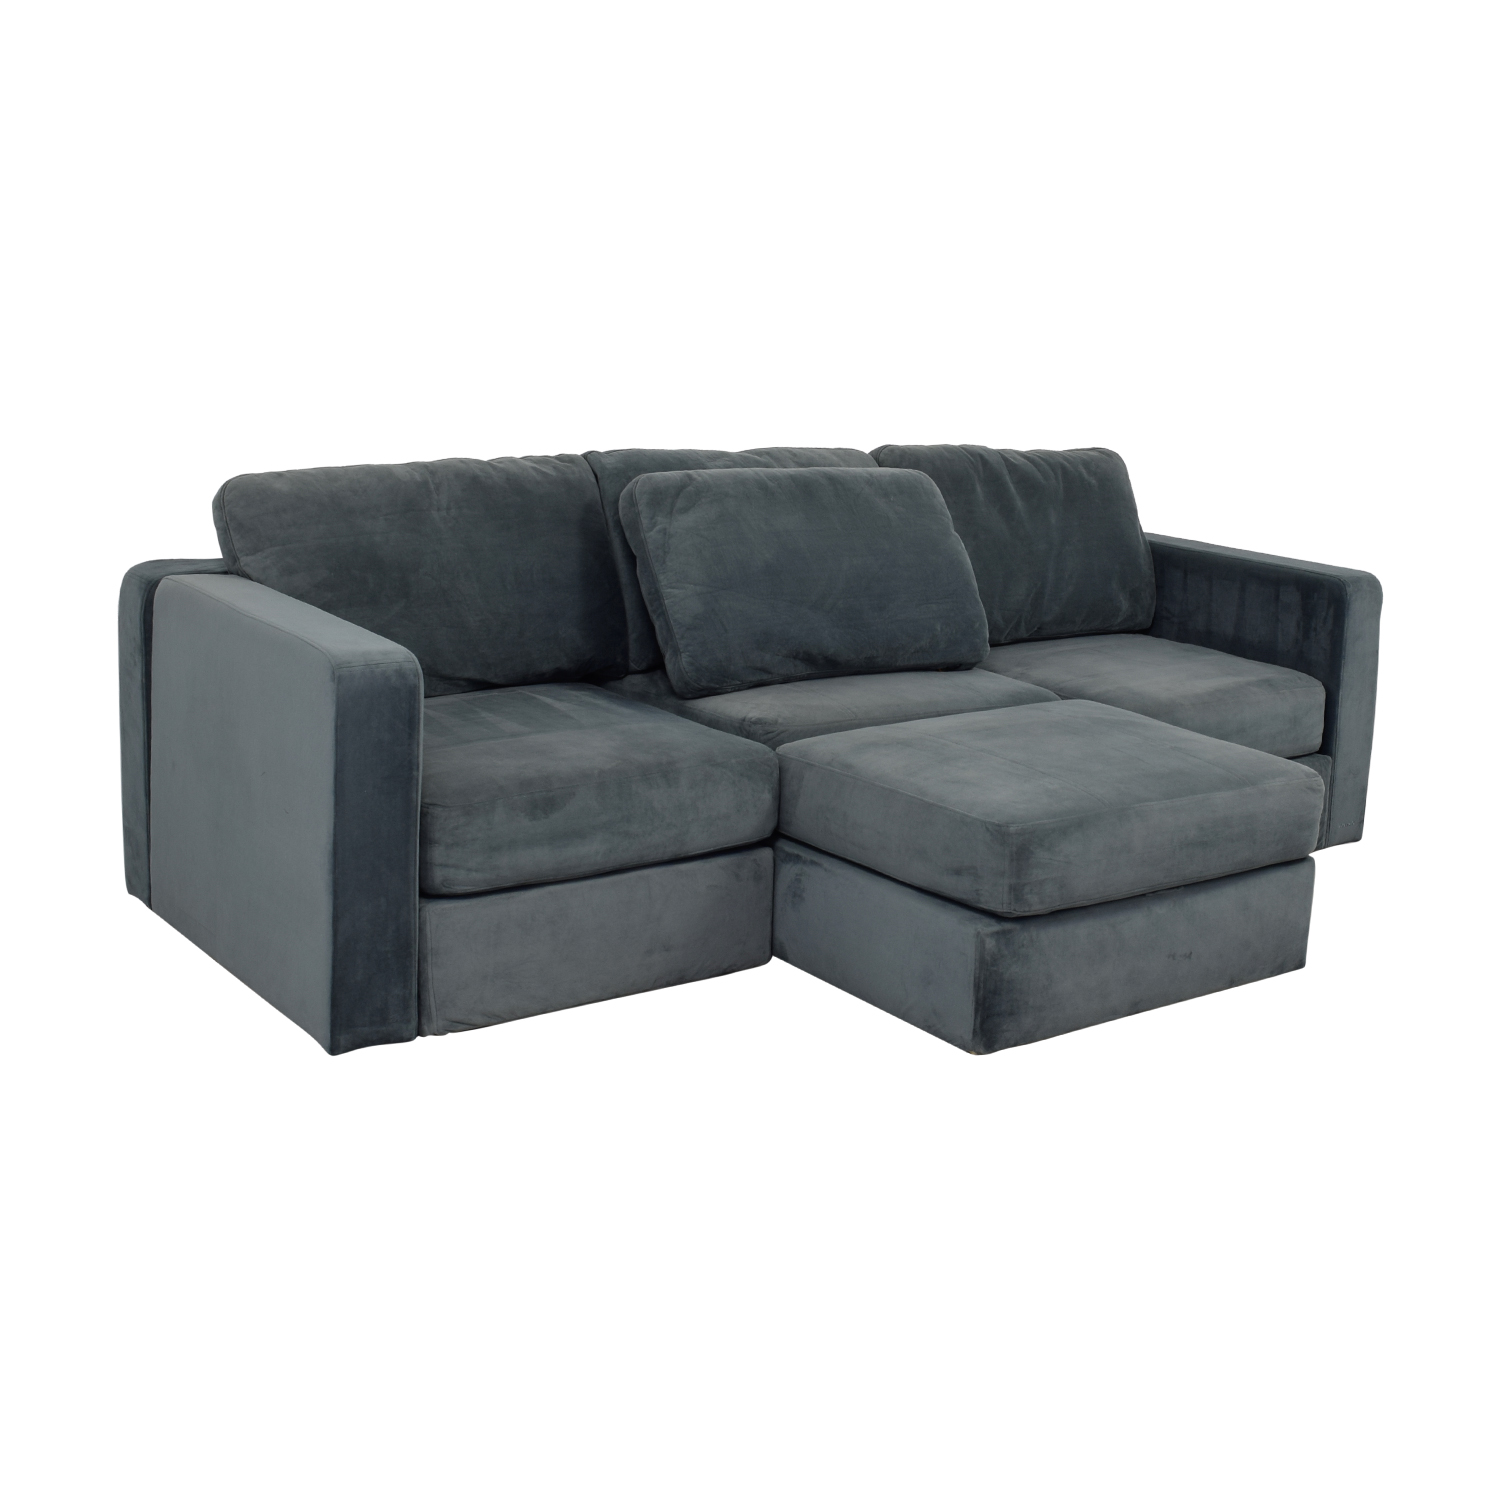 77 Off Lovesac Lovesac Grey Center Chaise Sectional Sofas